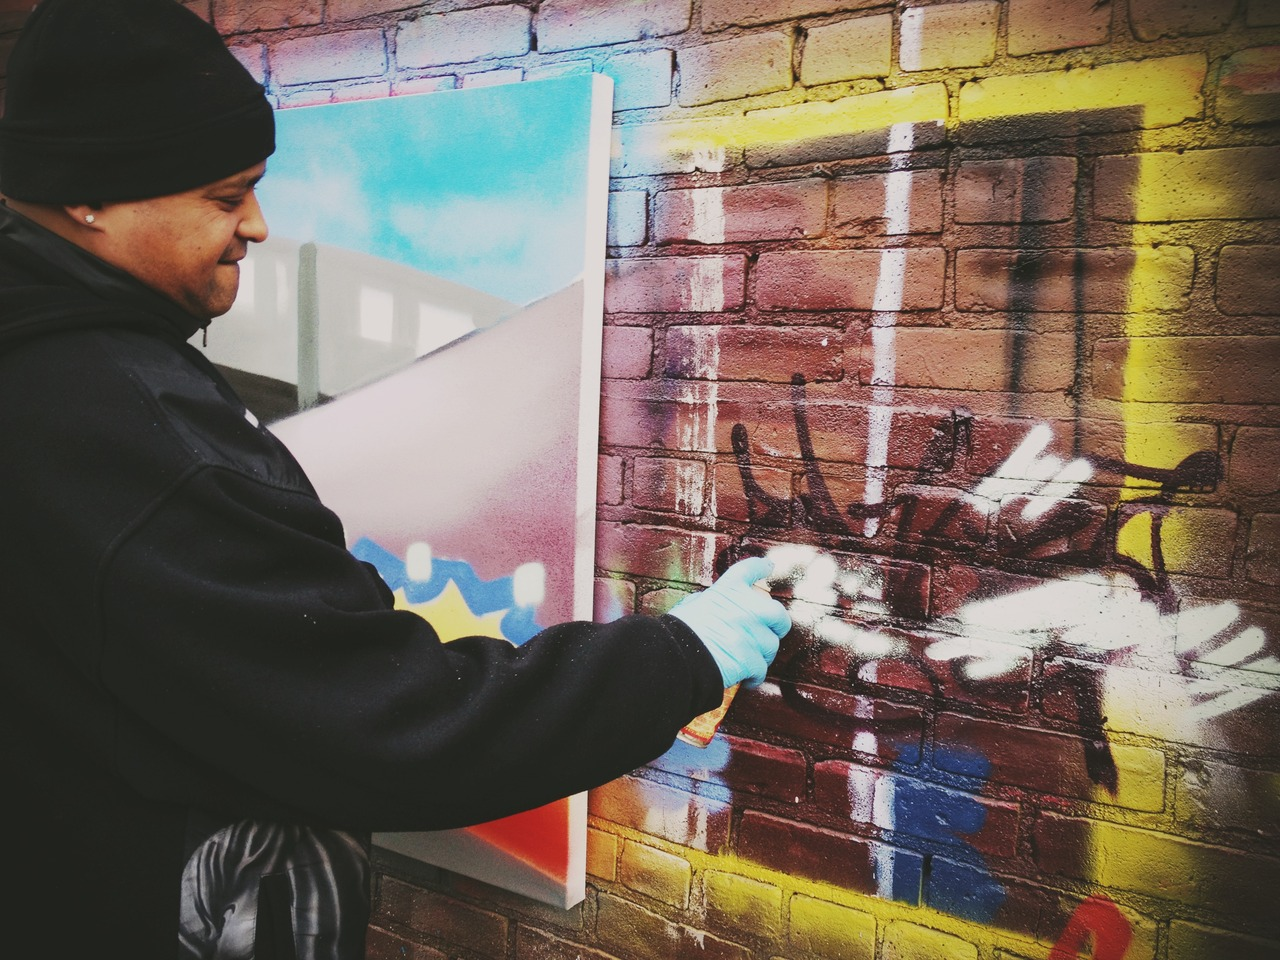 This is BG183 #peppersearching #pepper #photos #thebronx #graffiti #art #tag